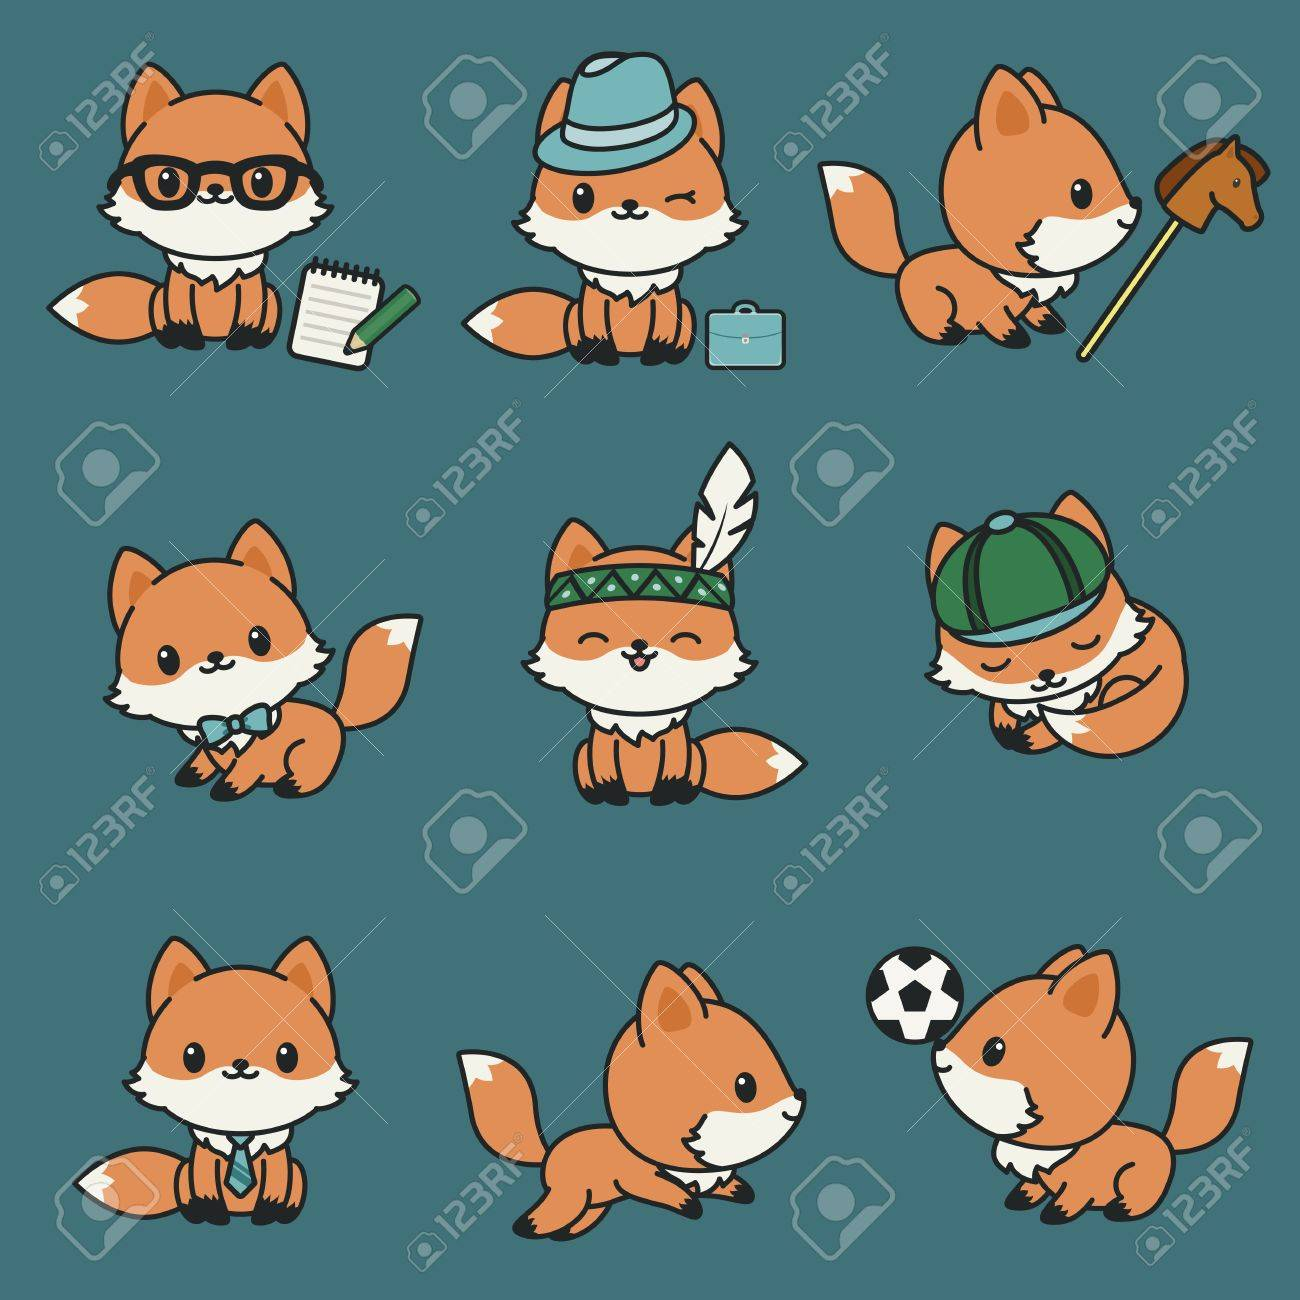 Mignons Renards Kawaii Set Dicônes Vectorielles